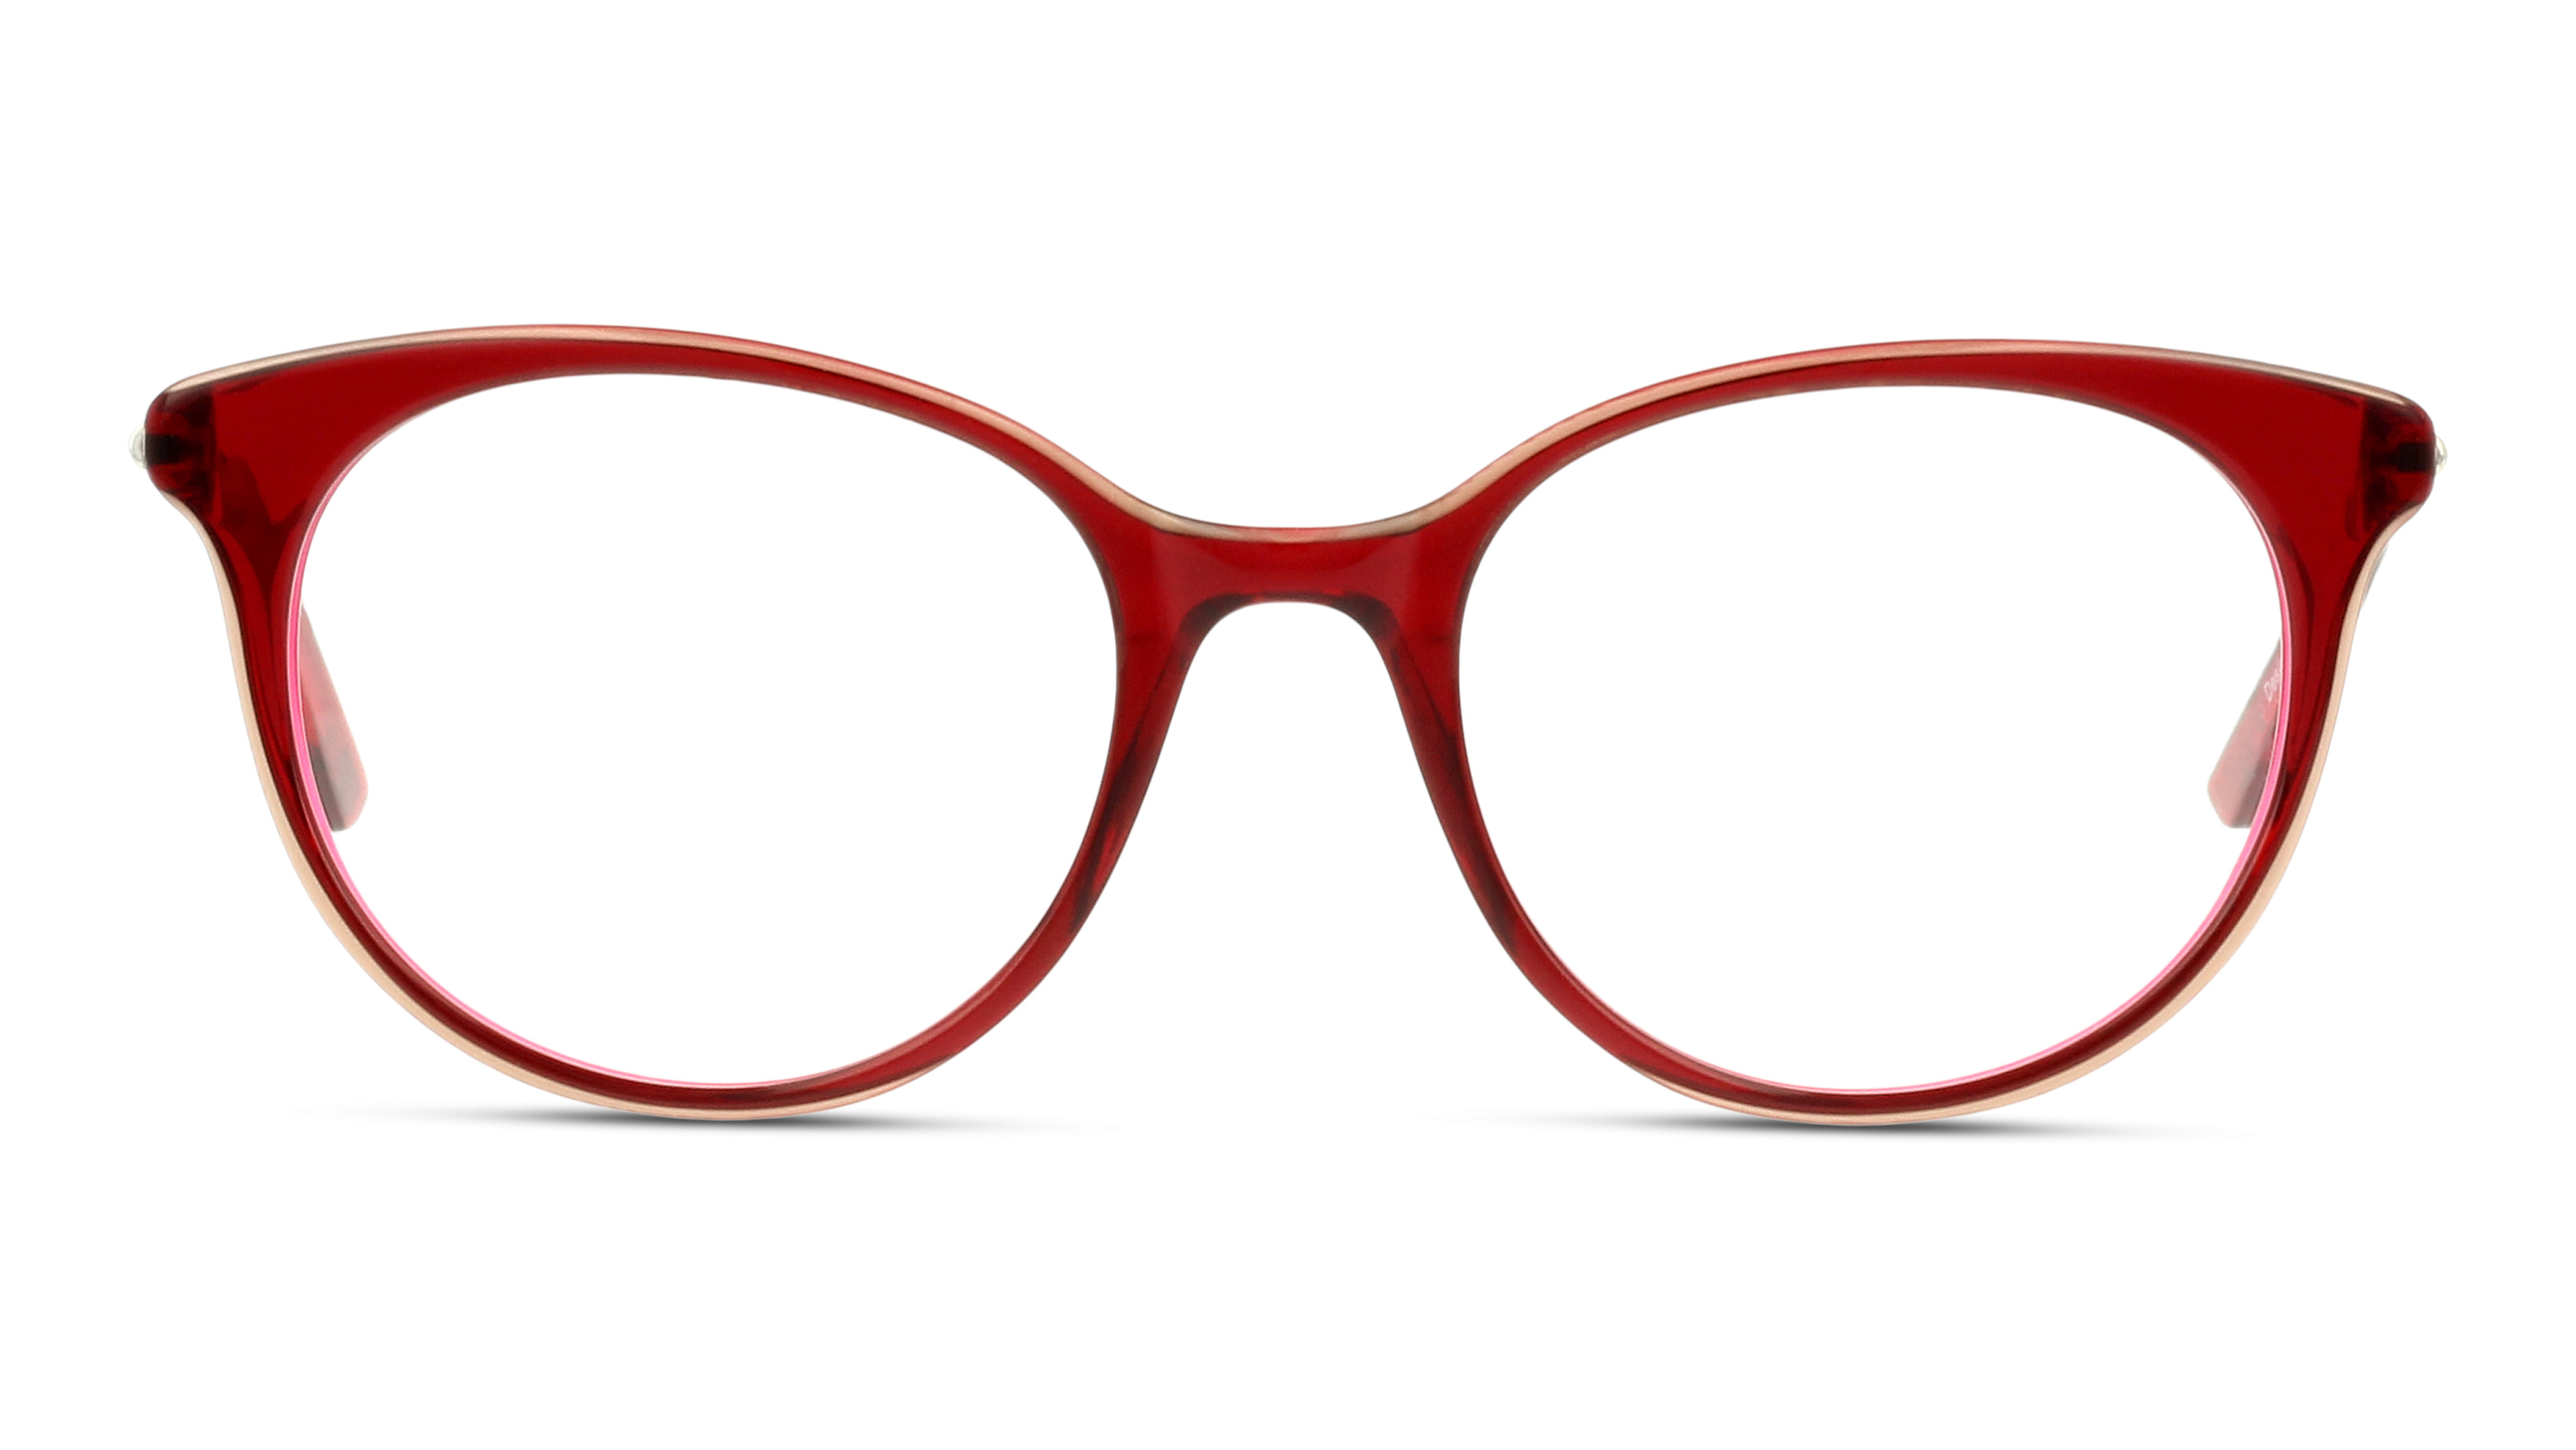 8719154575457-front-01-5th-avenue-fakf08-eyewear-red-gold